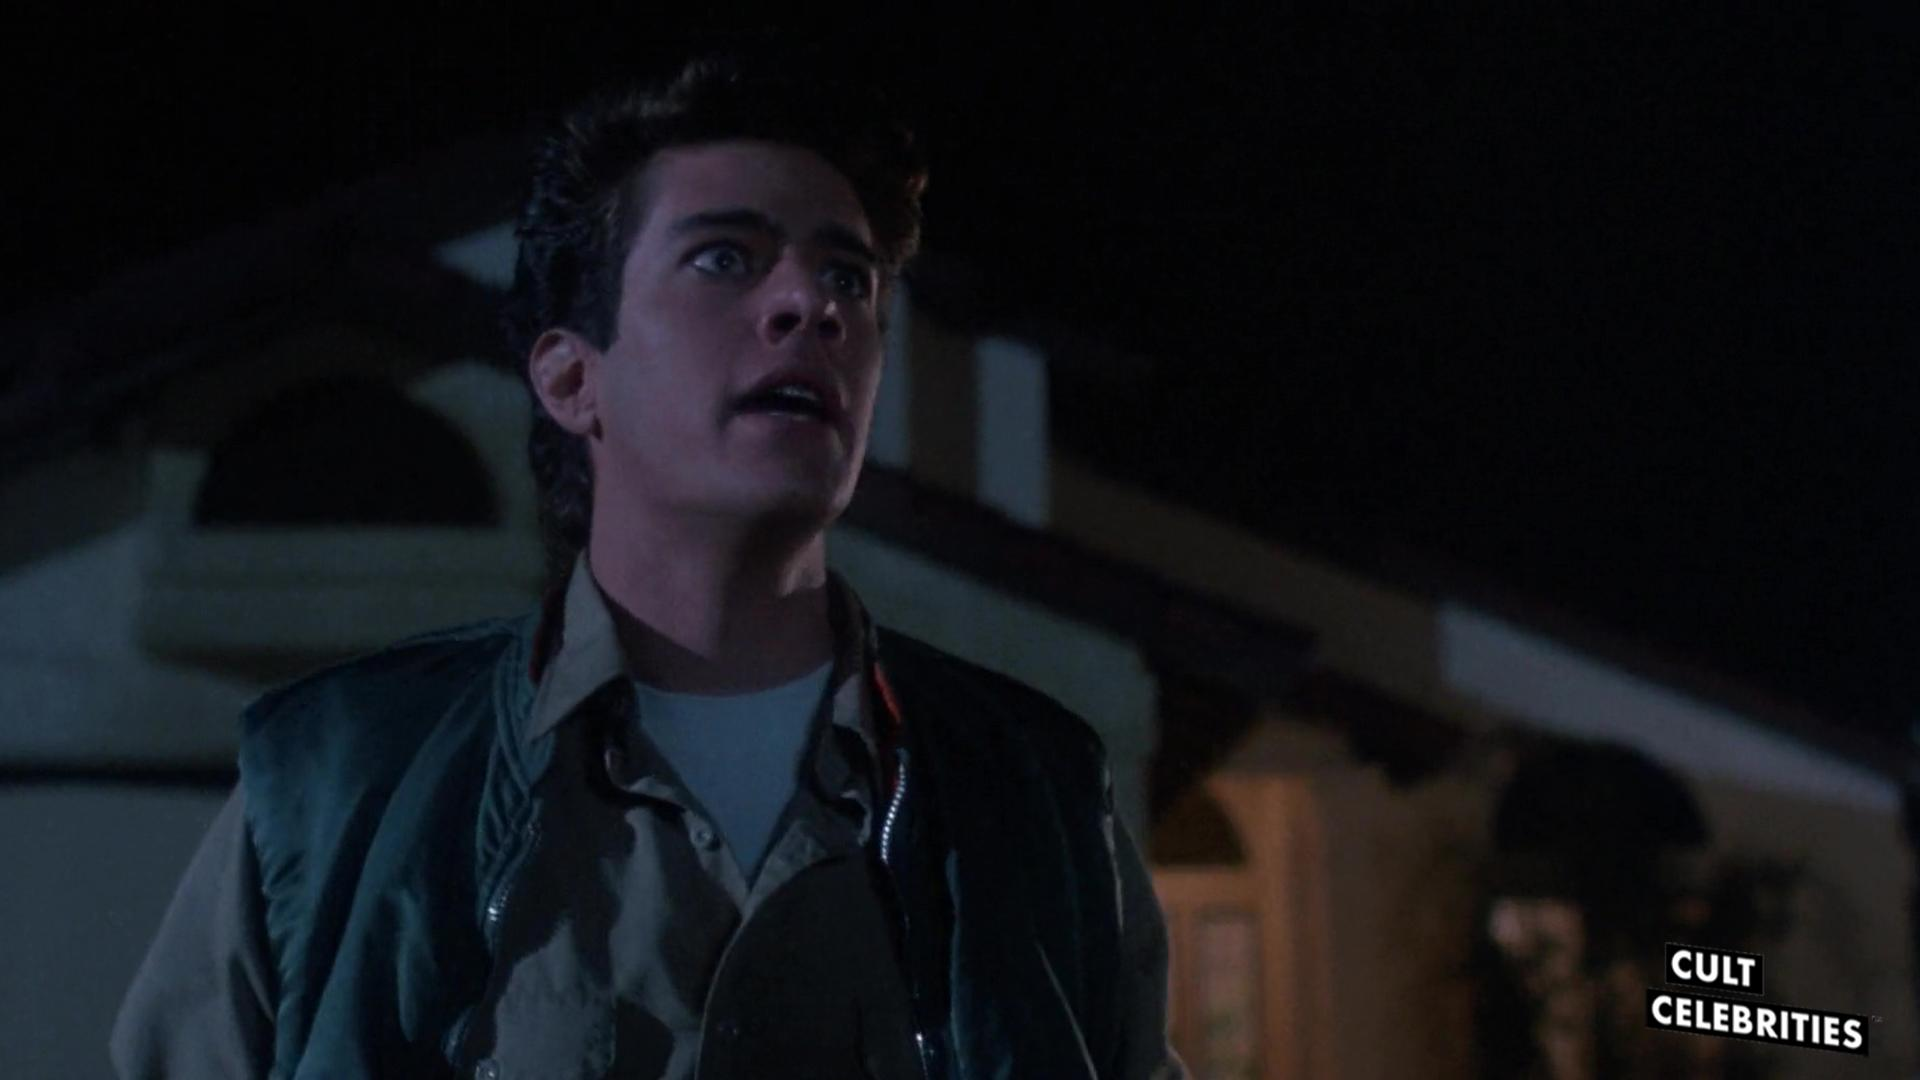 Dana Ashbrook in Return of the Living Dead II (1988)